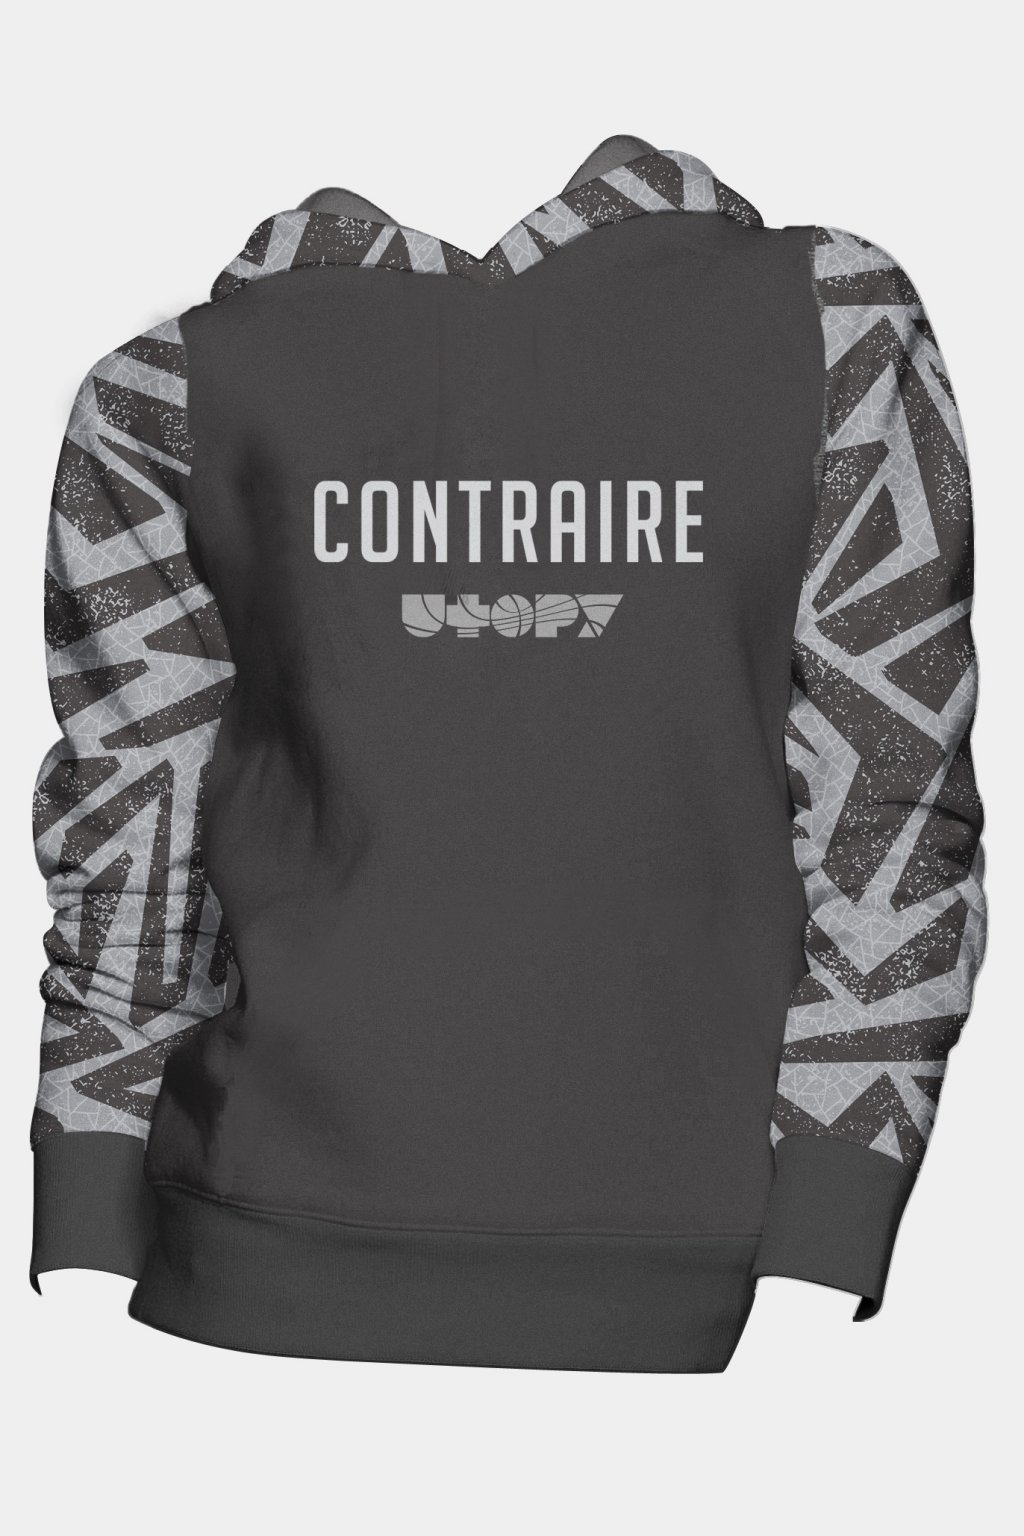 mikina contraire front by utopy